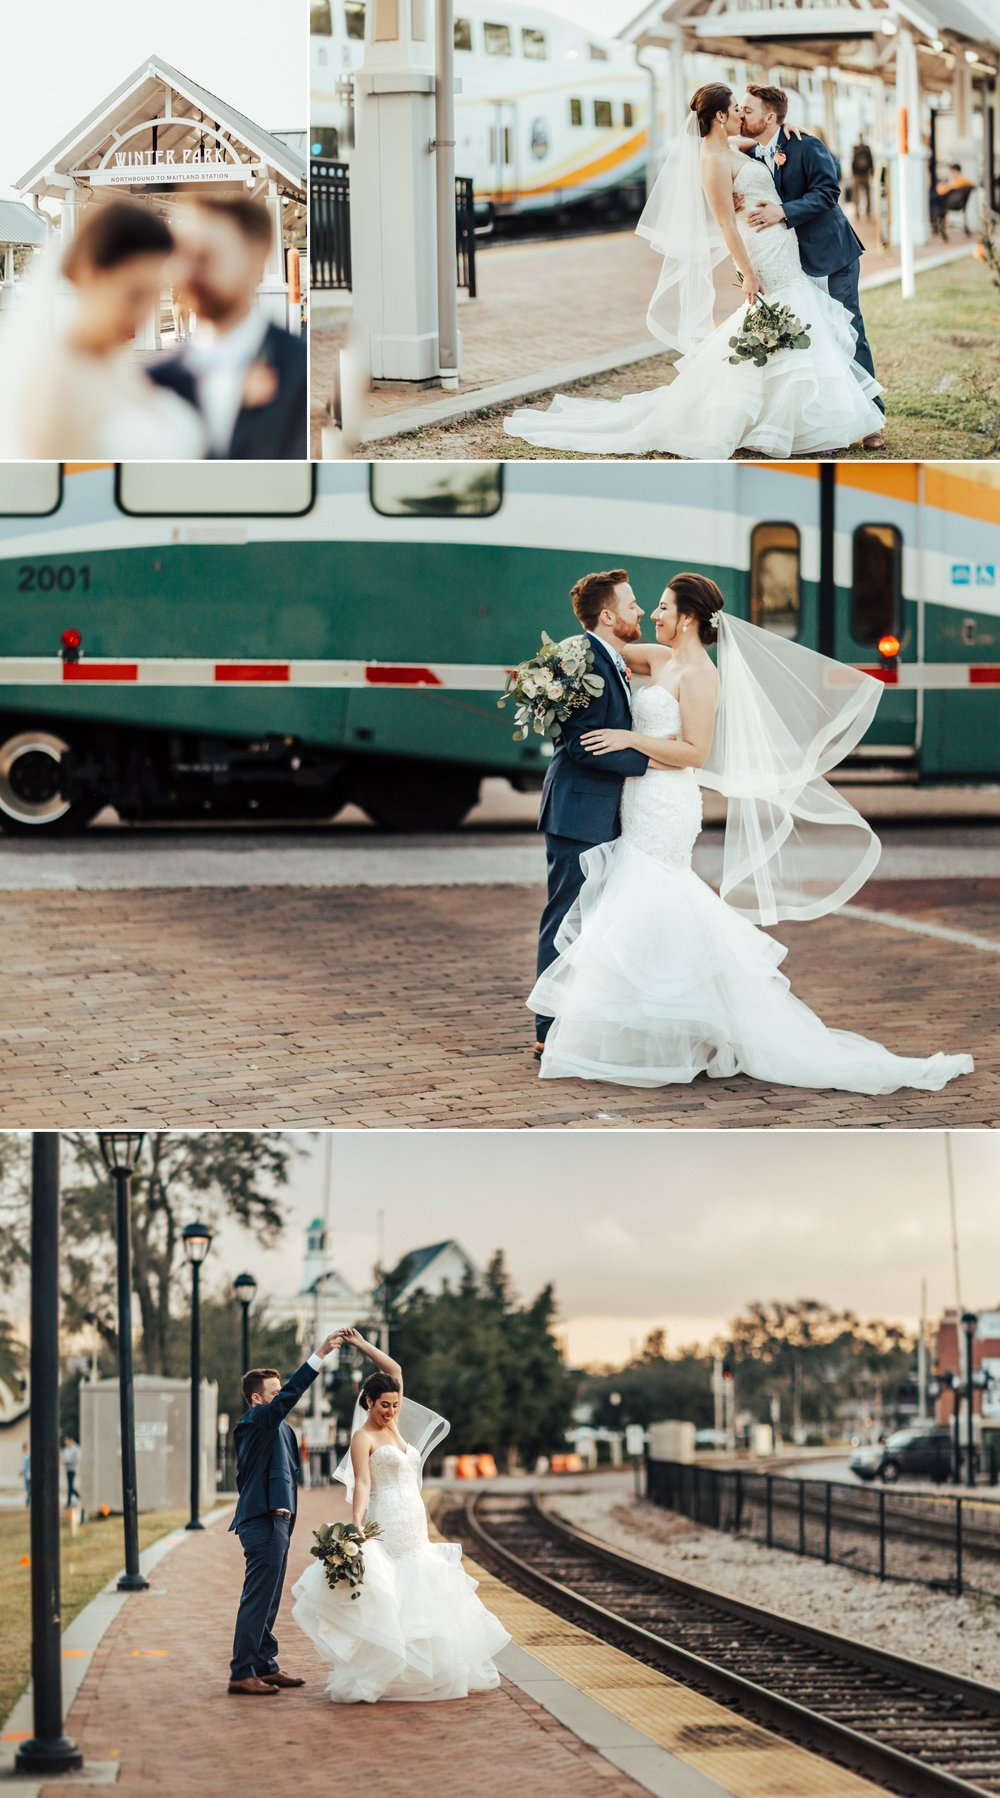 Winter Park Farmers Market wedding Over the Moon Events- Rustic Chic French Market Wedding Photography18.jpg